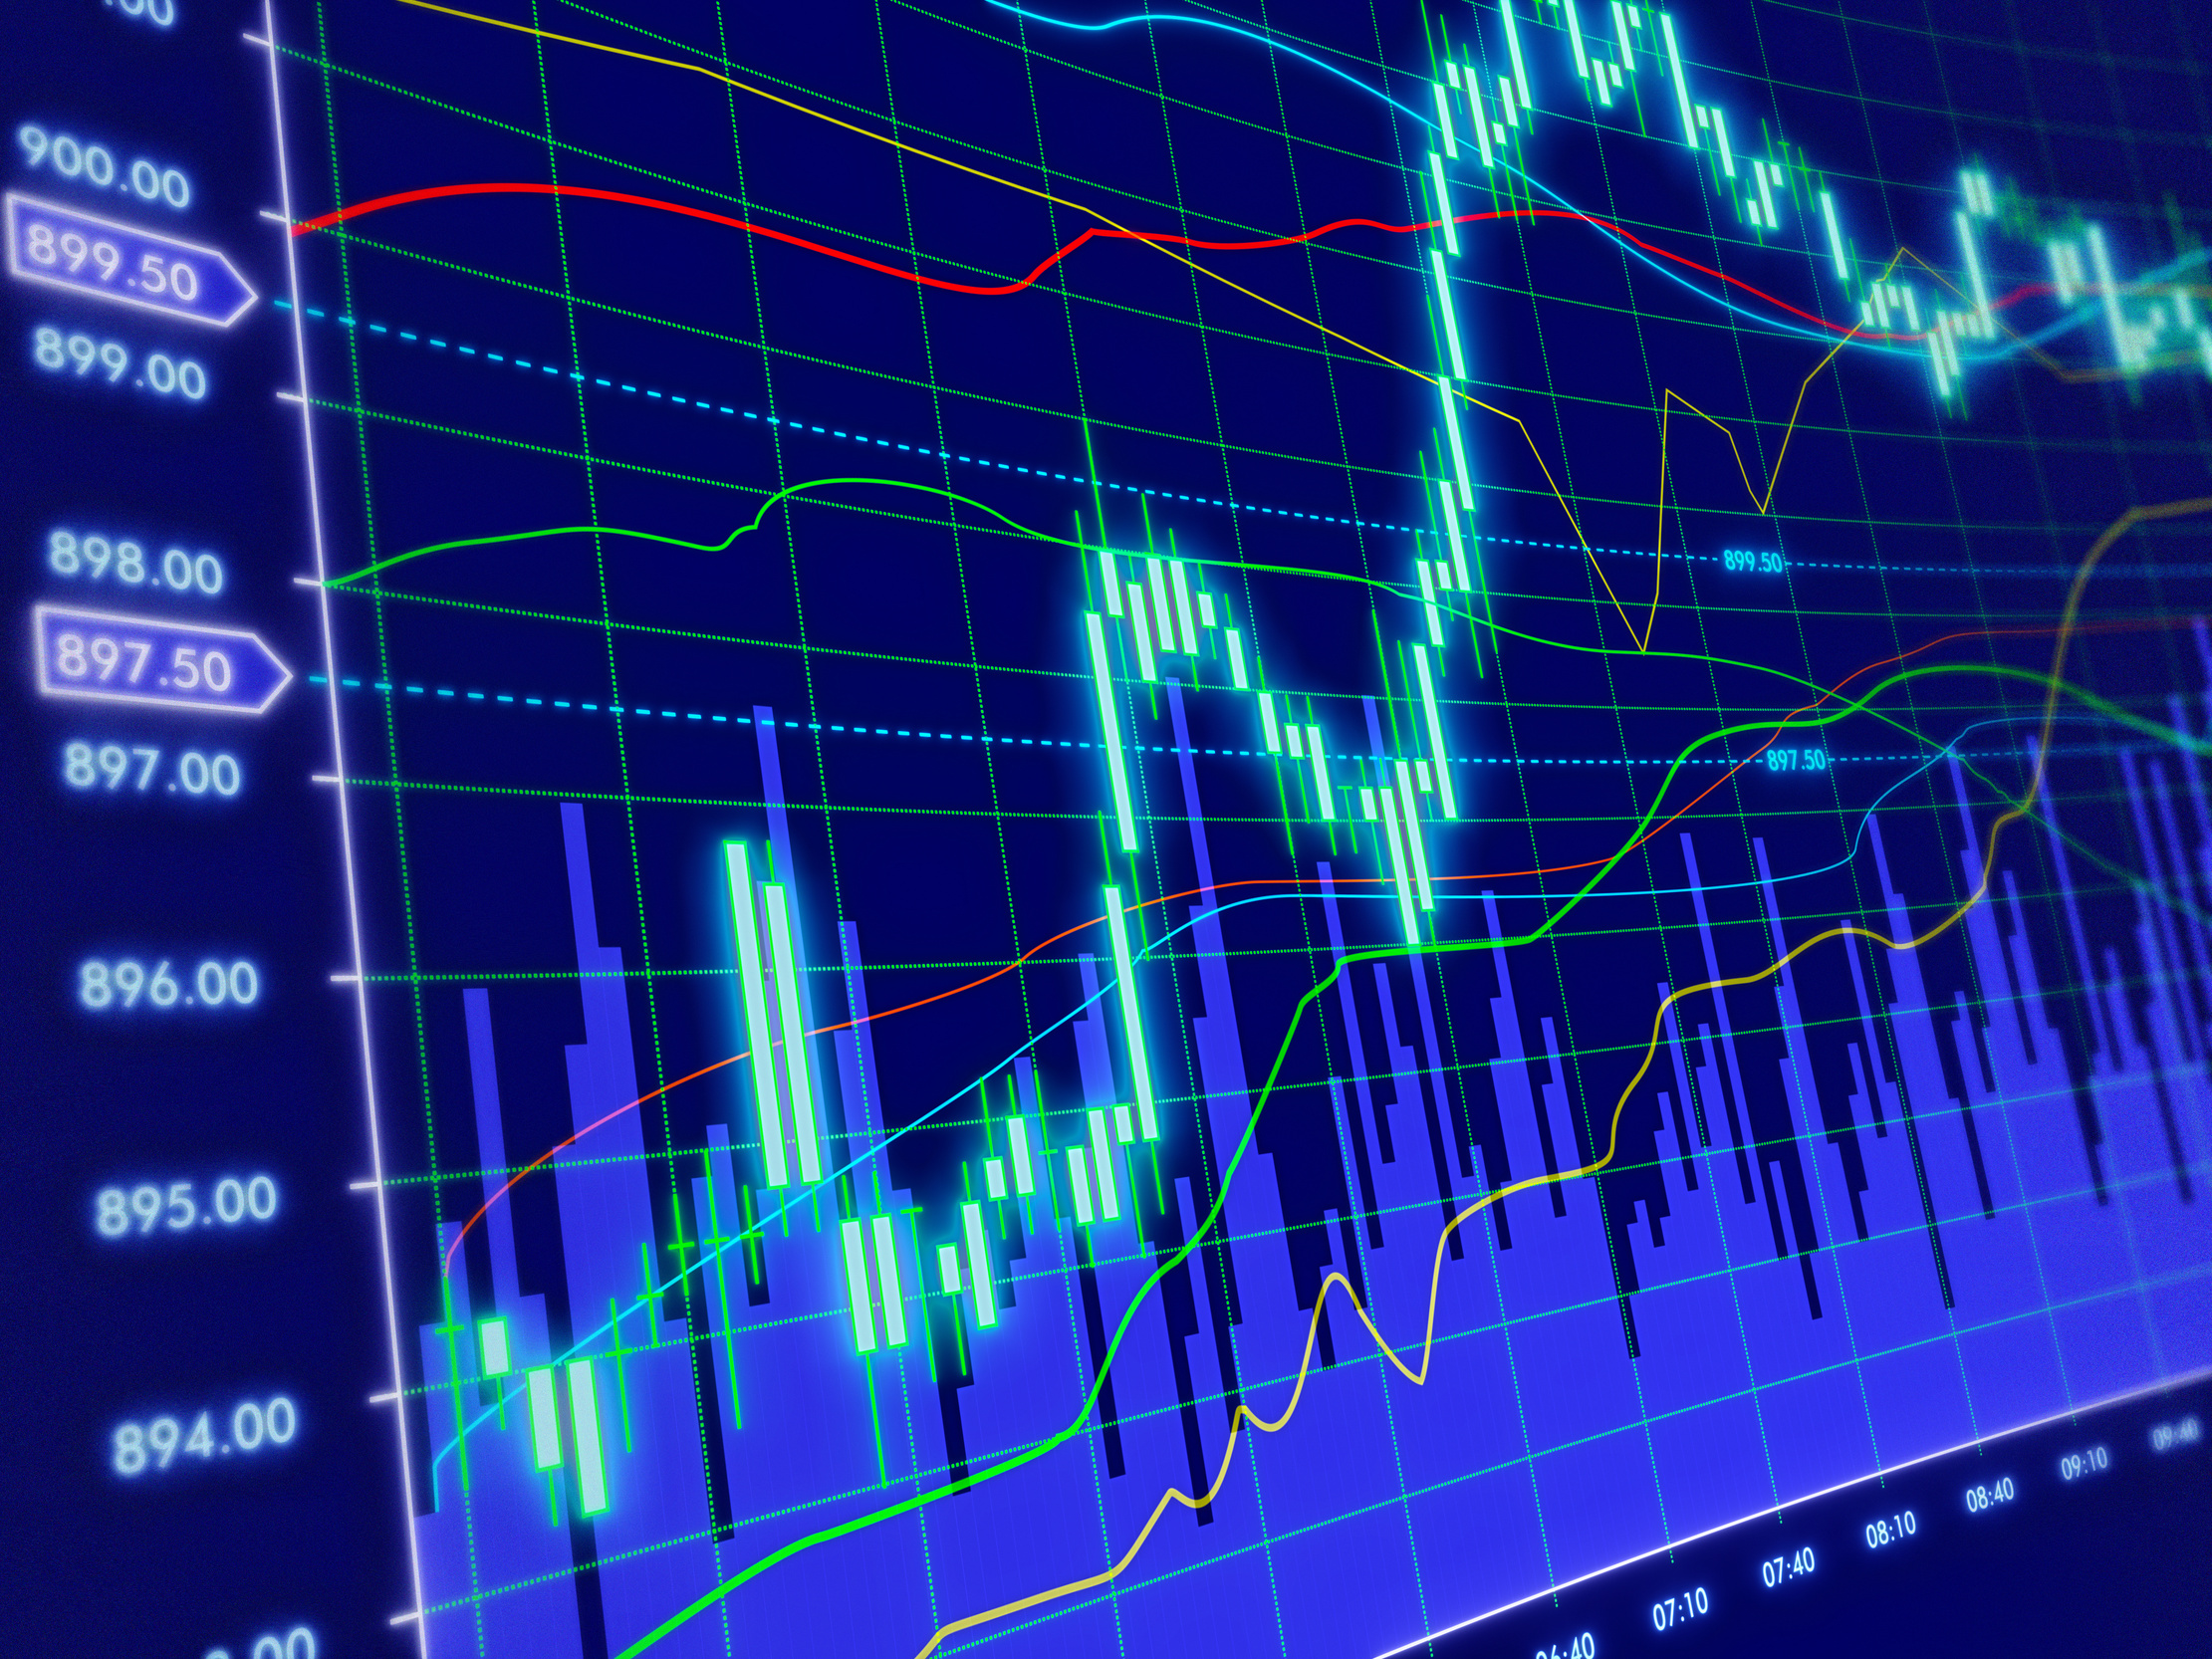 3d blue background with stock diagram - BSIC | Bocconi Students Investment  Club